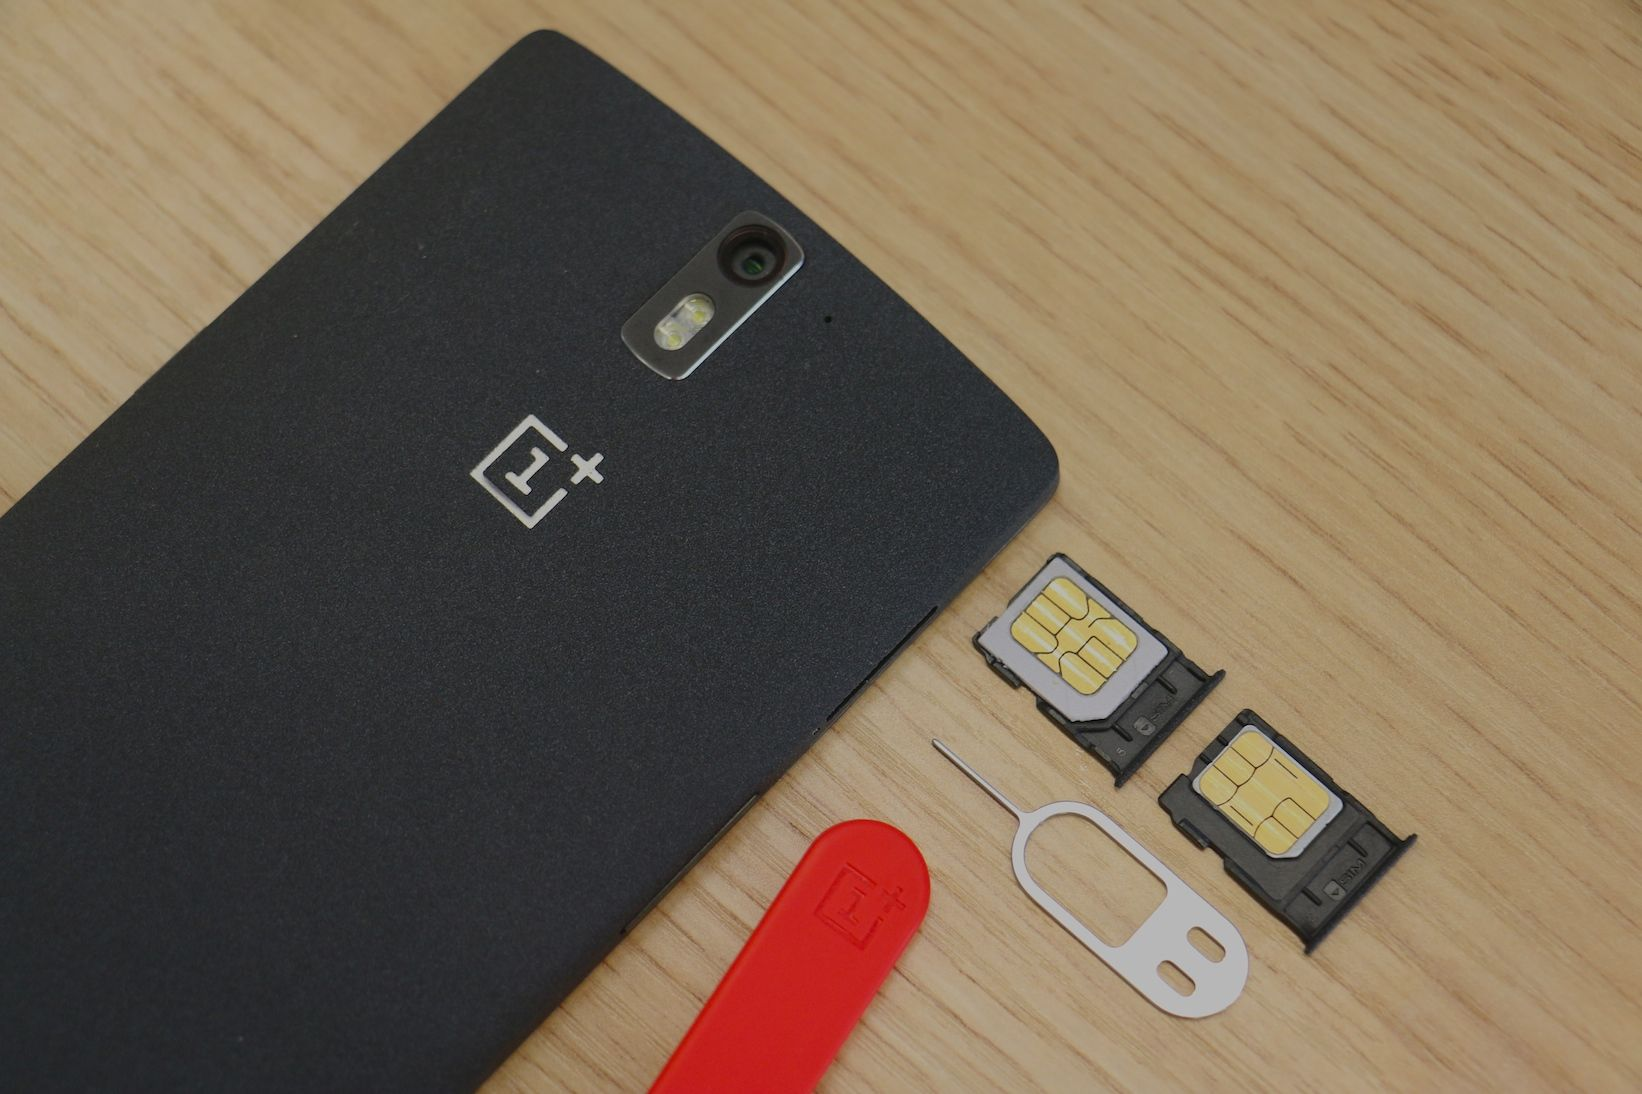 Iphone 5 Sim Karte.Nano Sim Support Is Now A Feature Of The One Oneplus Community